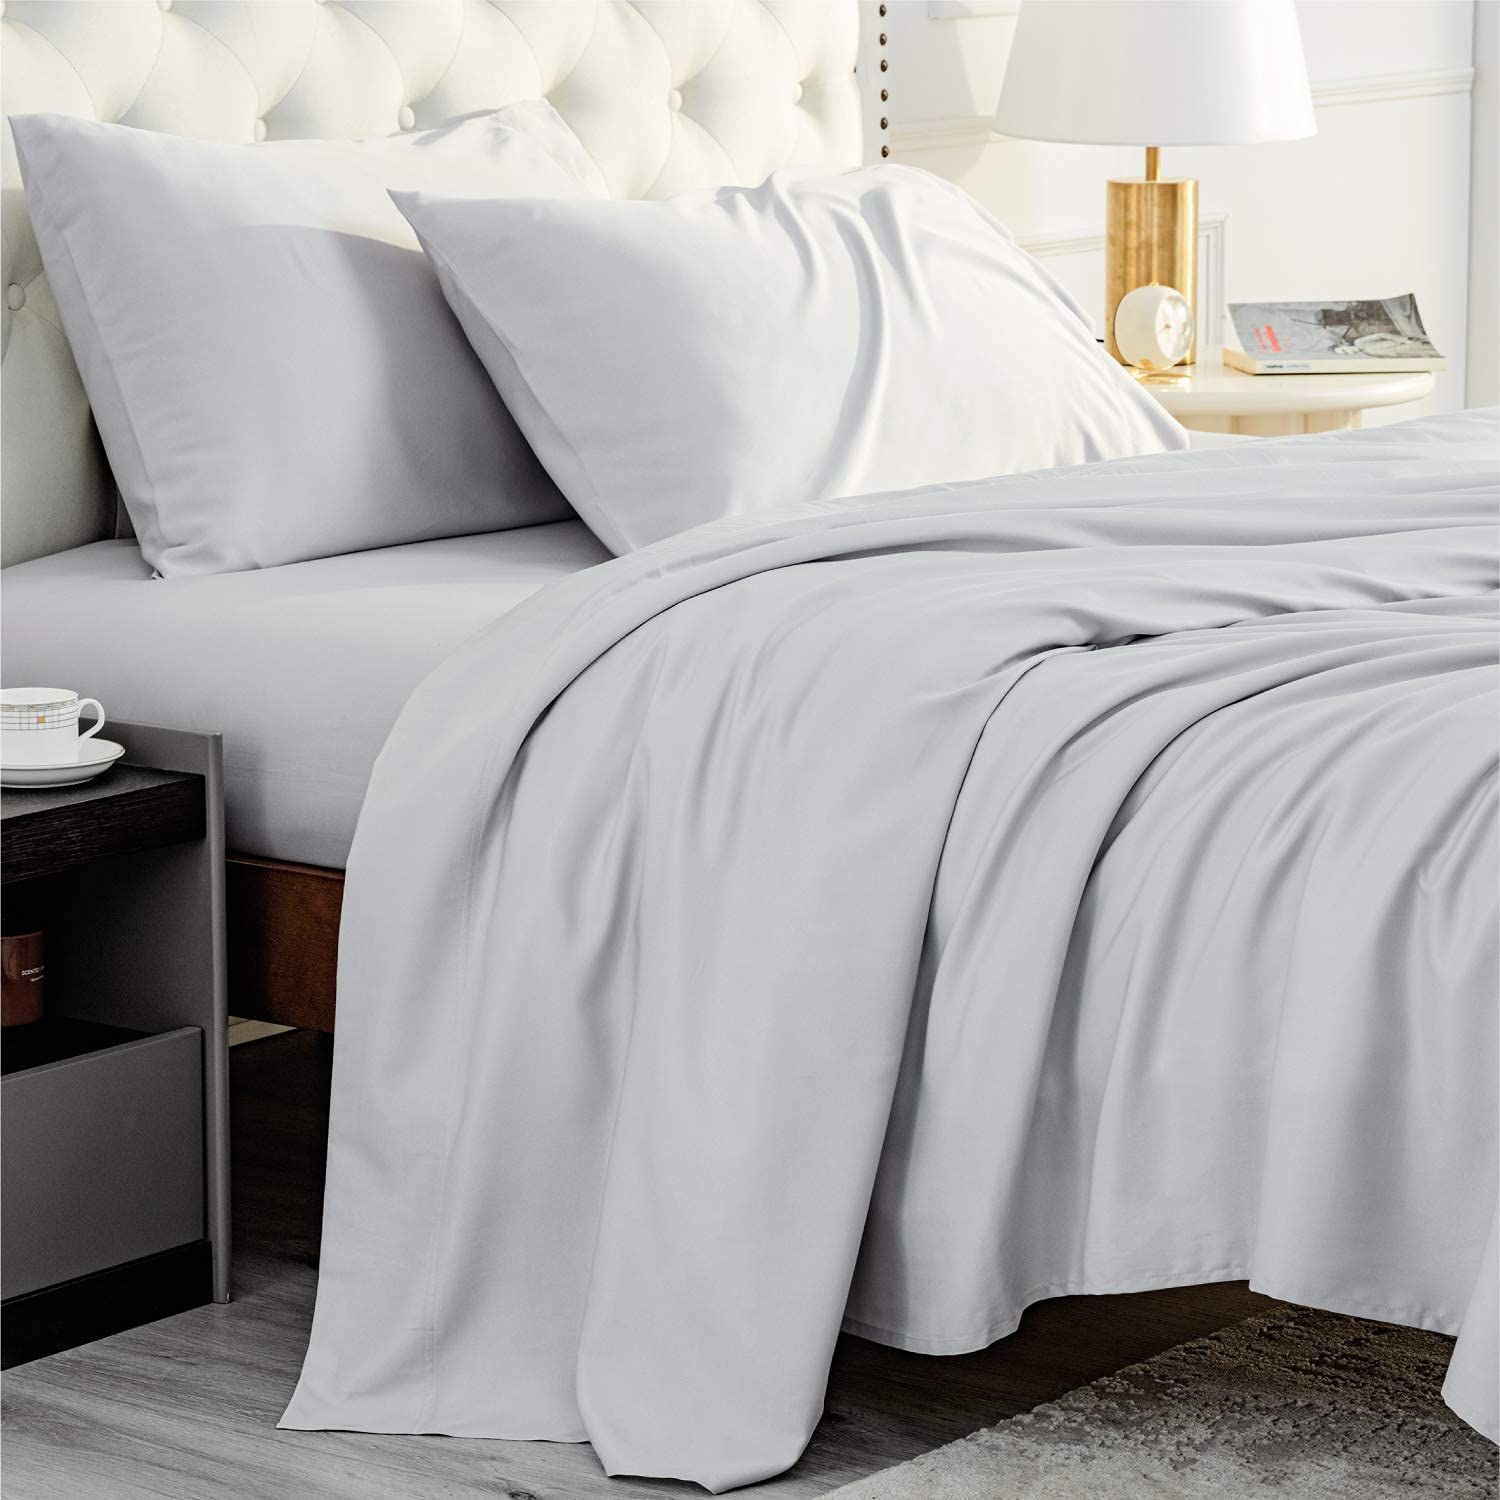 Bedsure Bamboo Sheets Queen Size Grey - Cooling Sheets 4 PC Luxury Bed Sheets Set for Night Sweat with 16 inches Deep Pocket Bamboo Viscose & Polyester